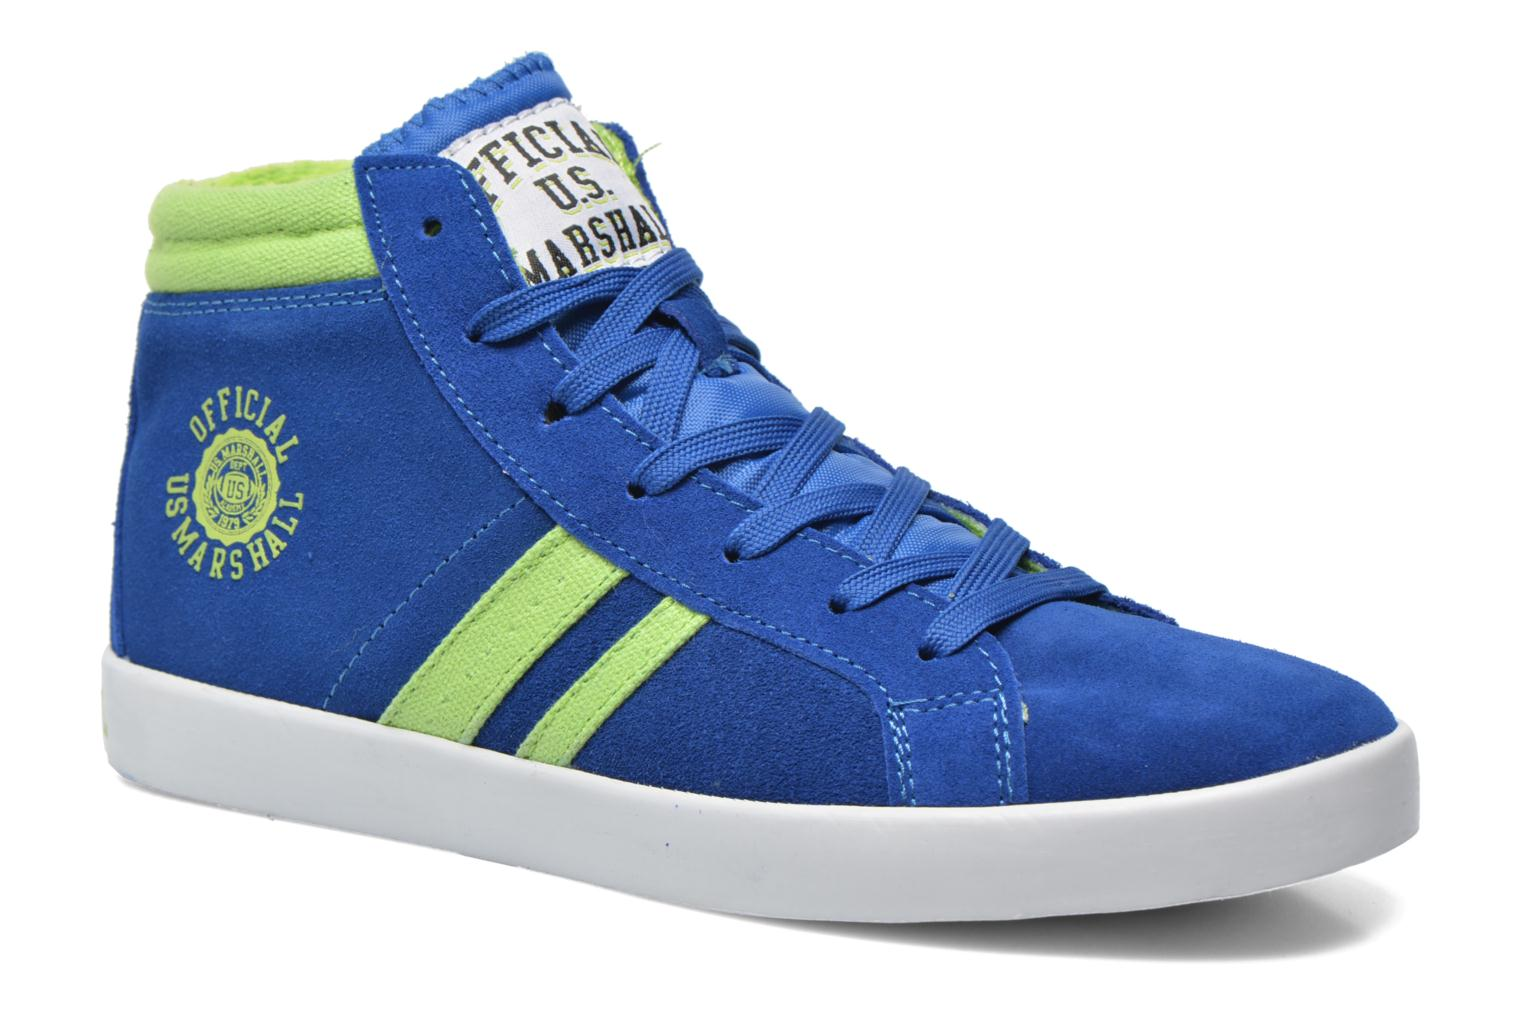 Sneakers Dofin by US Marshall